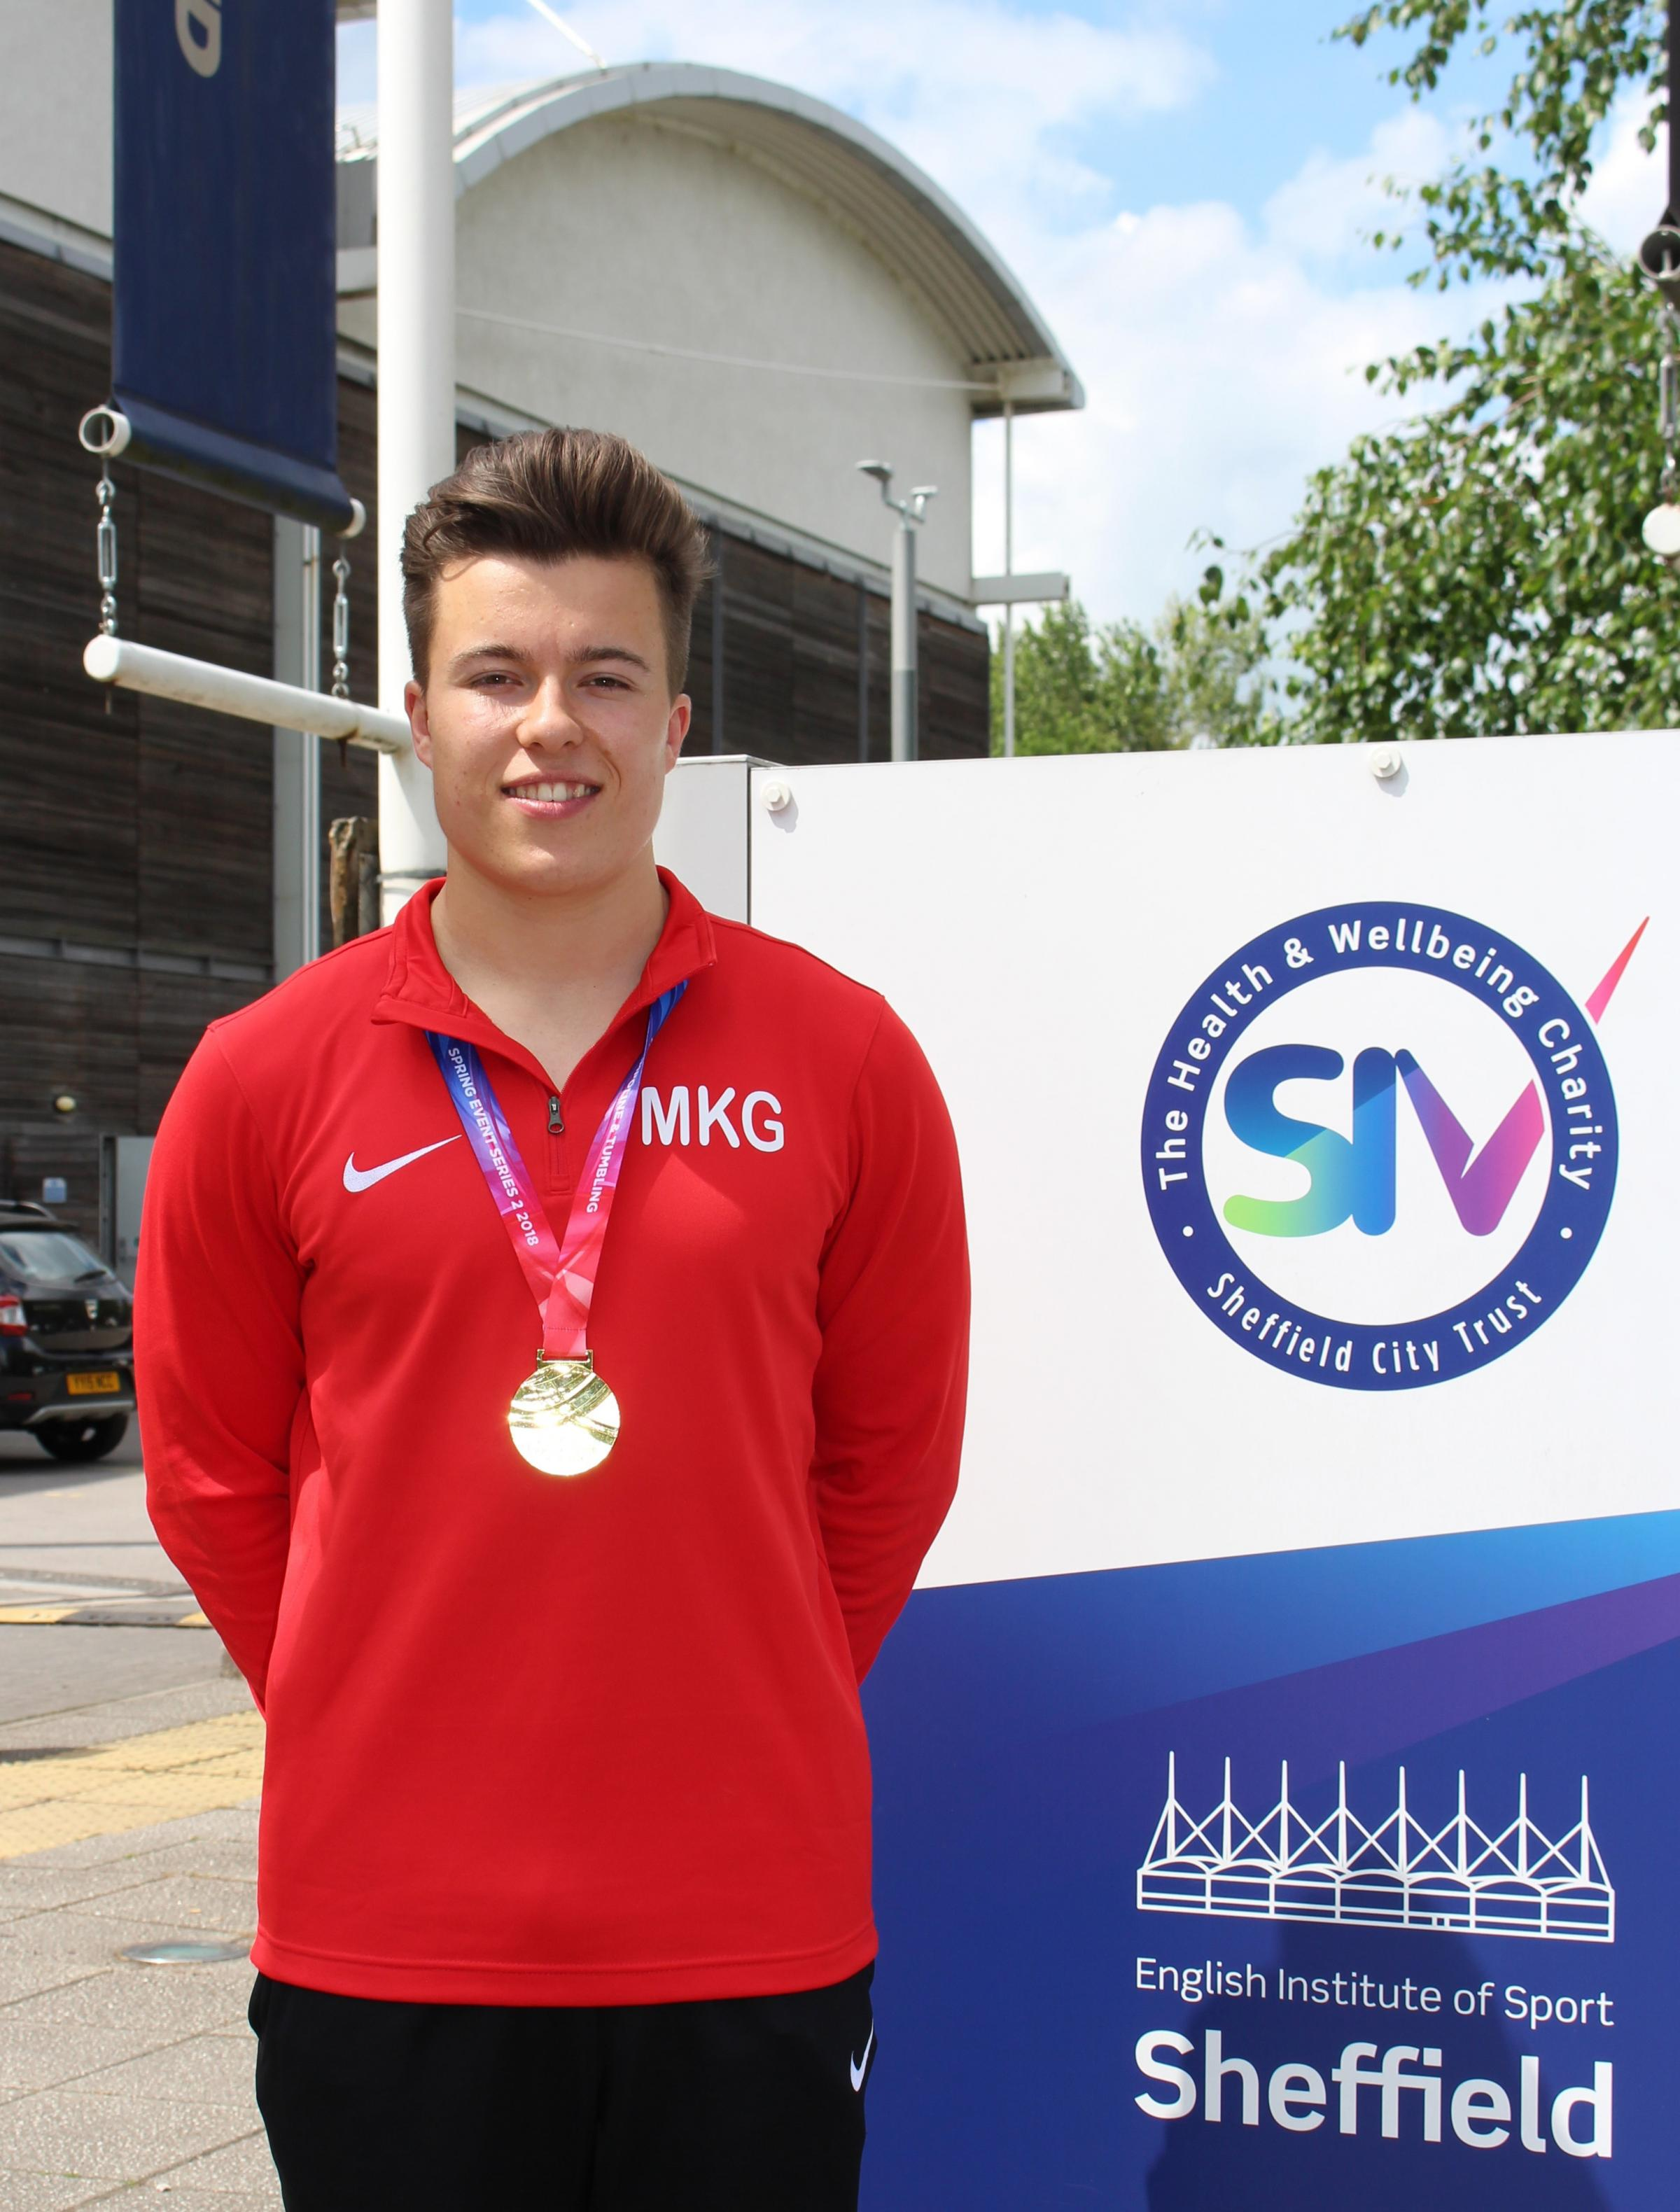 TRIUMPHANT DISPLAY: Ben Goodall proudly displays his gold medal at Sheffield